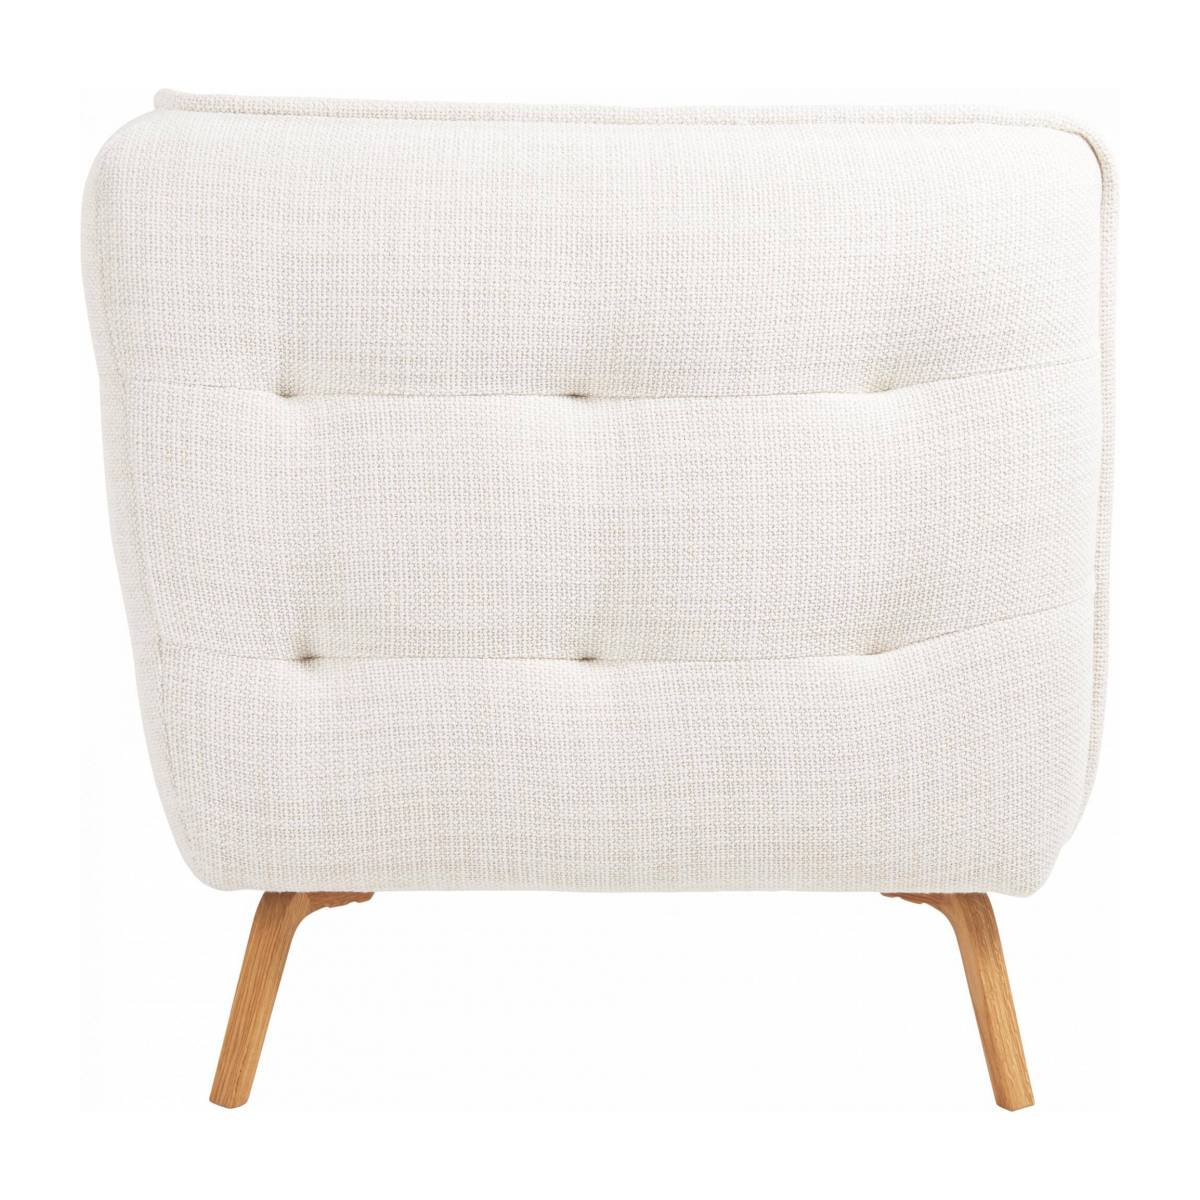 2 seater sofa in Fasoli fabric, snow white and oak legs n°4